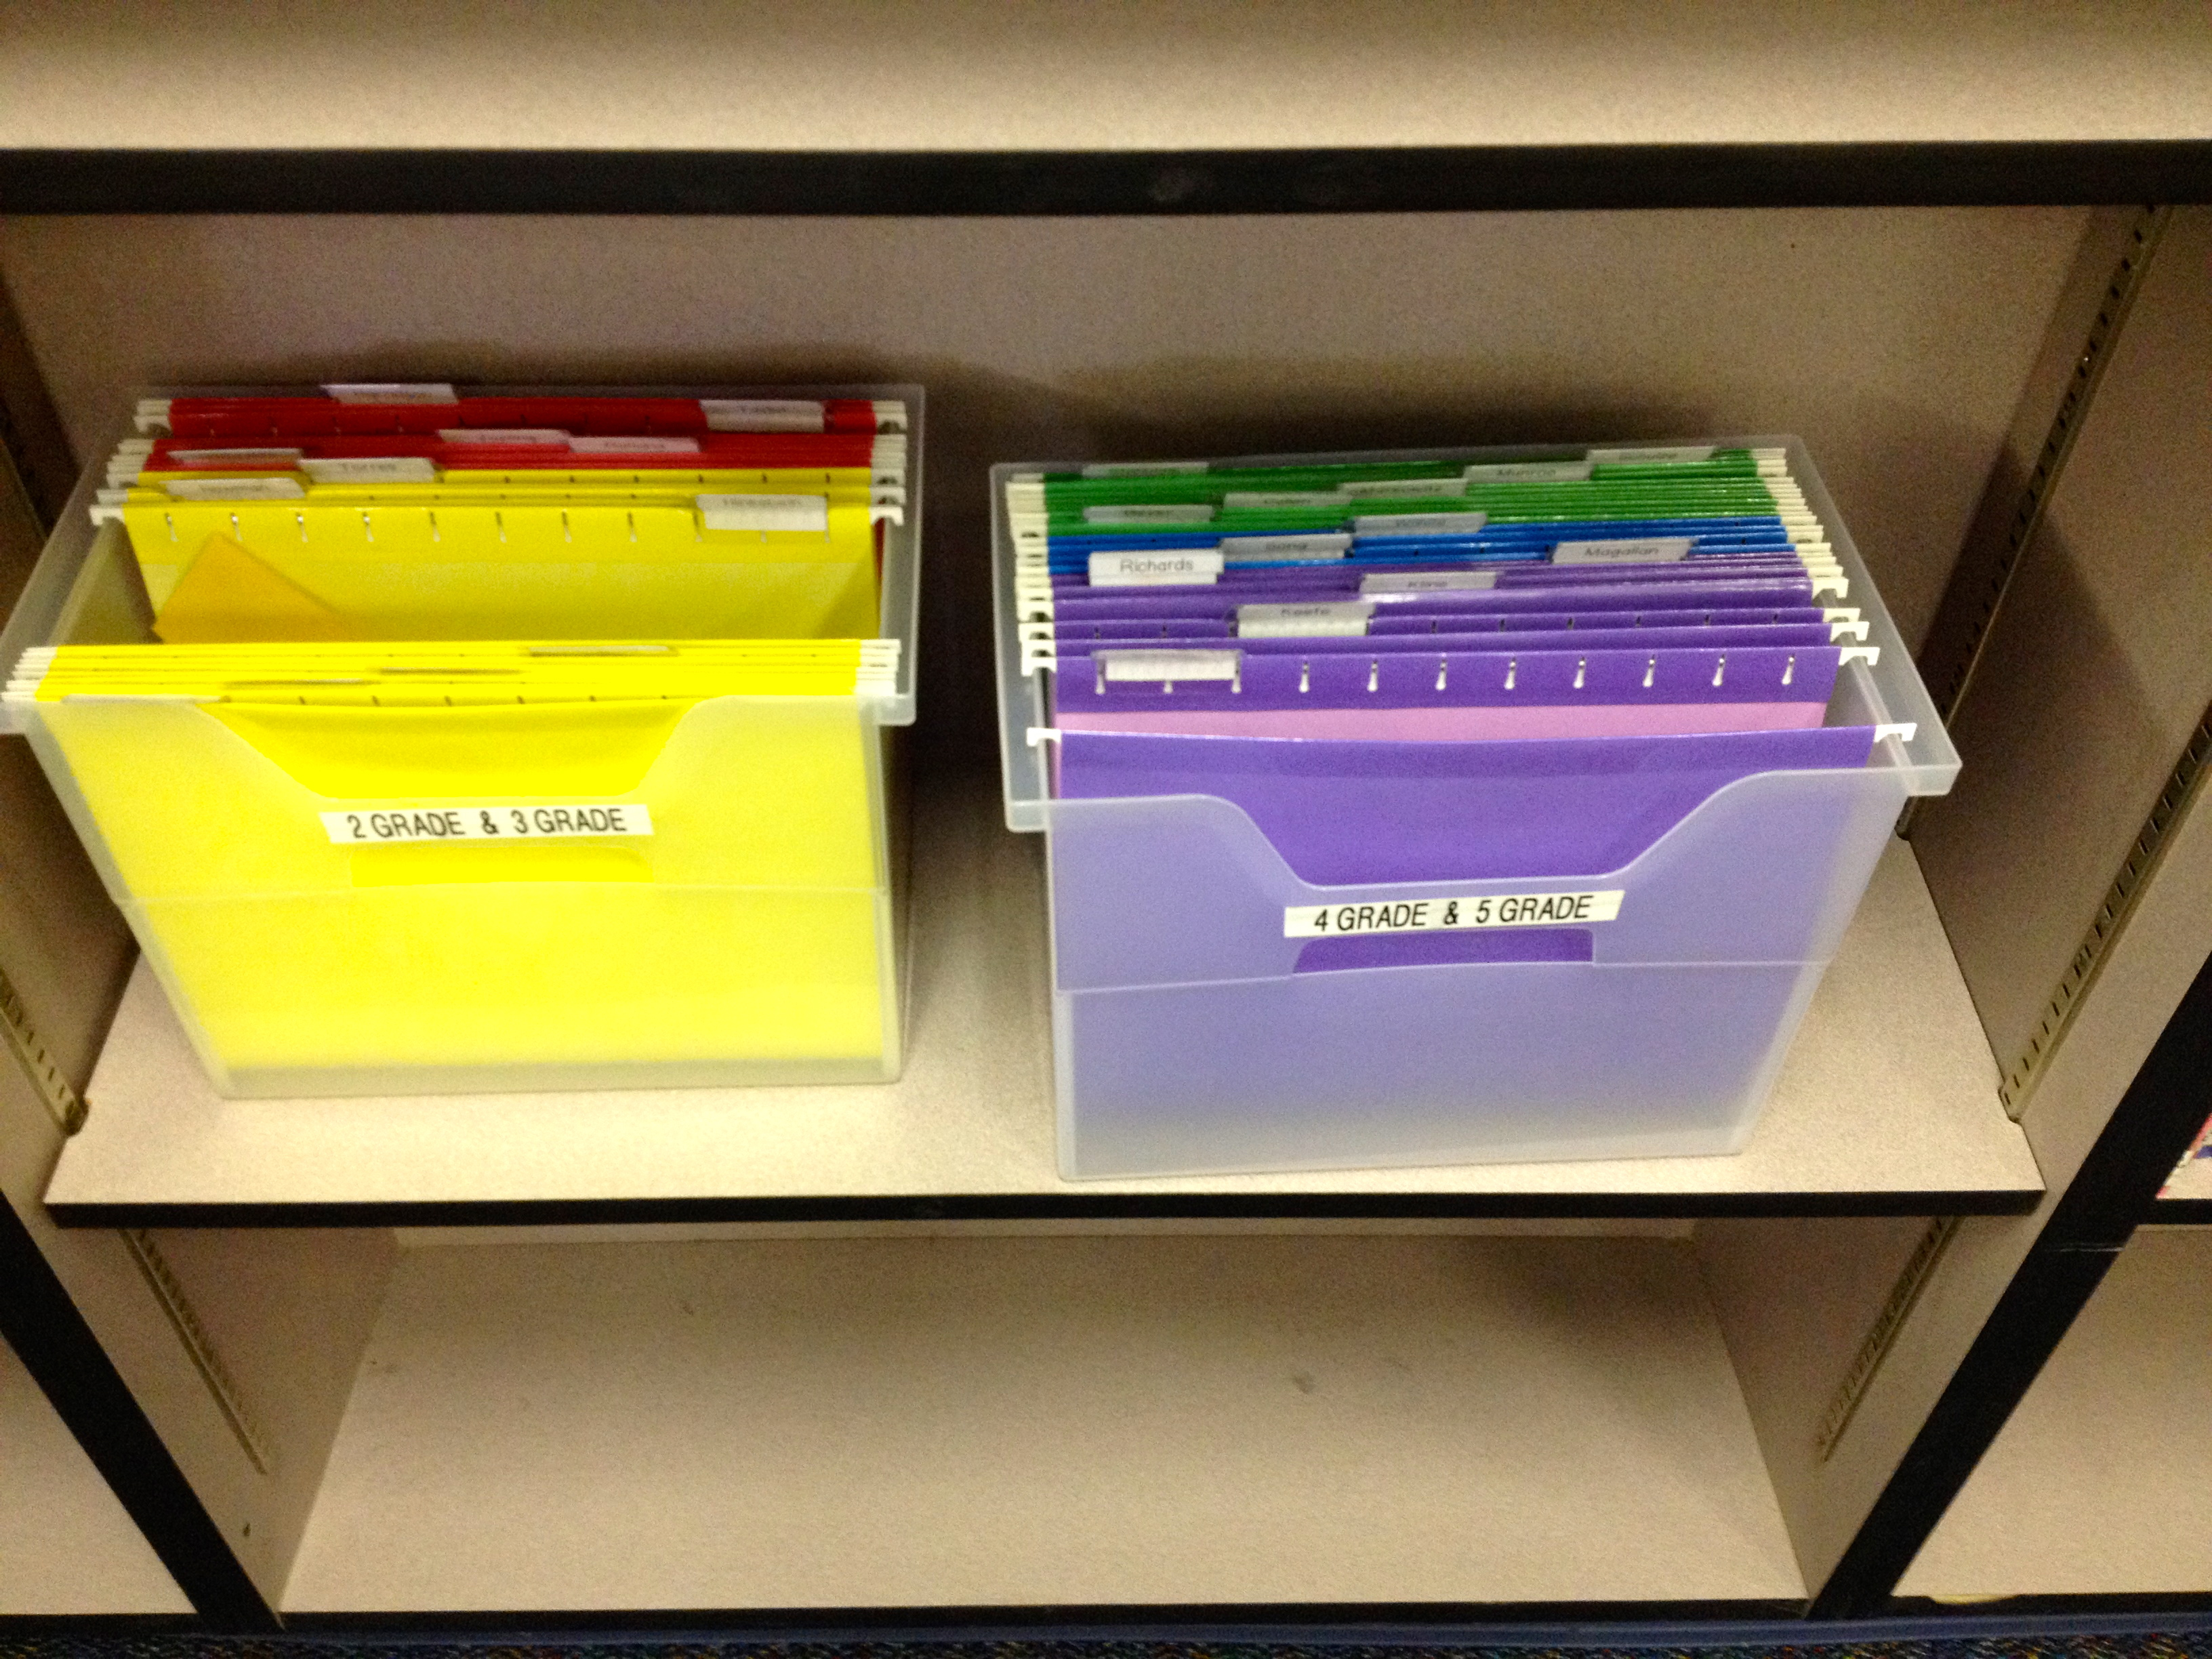 Library Card Shelf Markers, Part 2